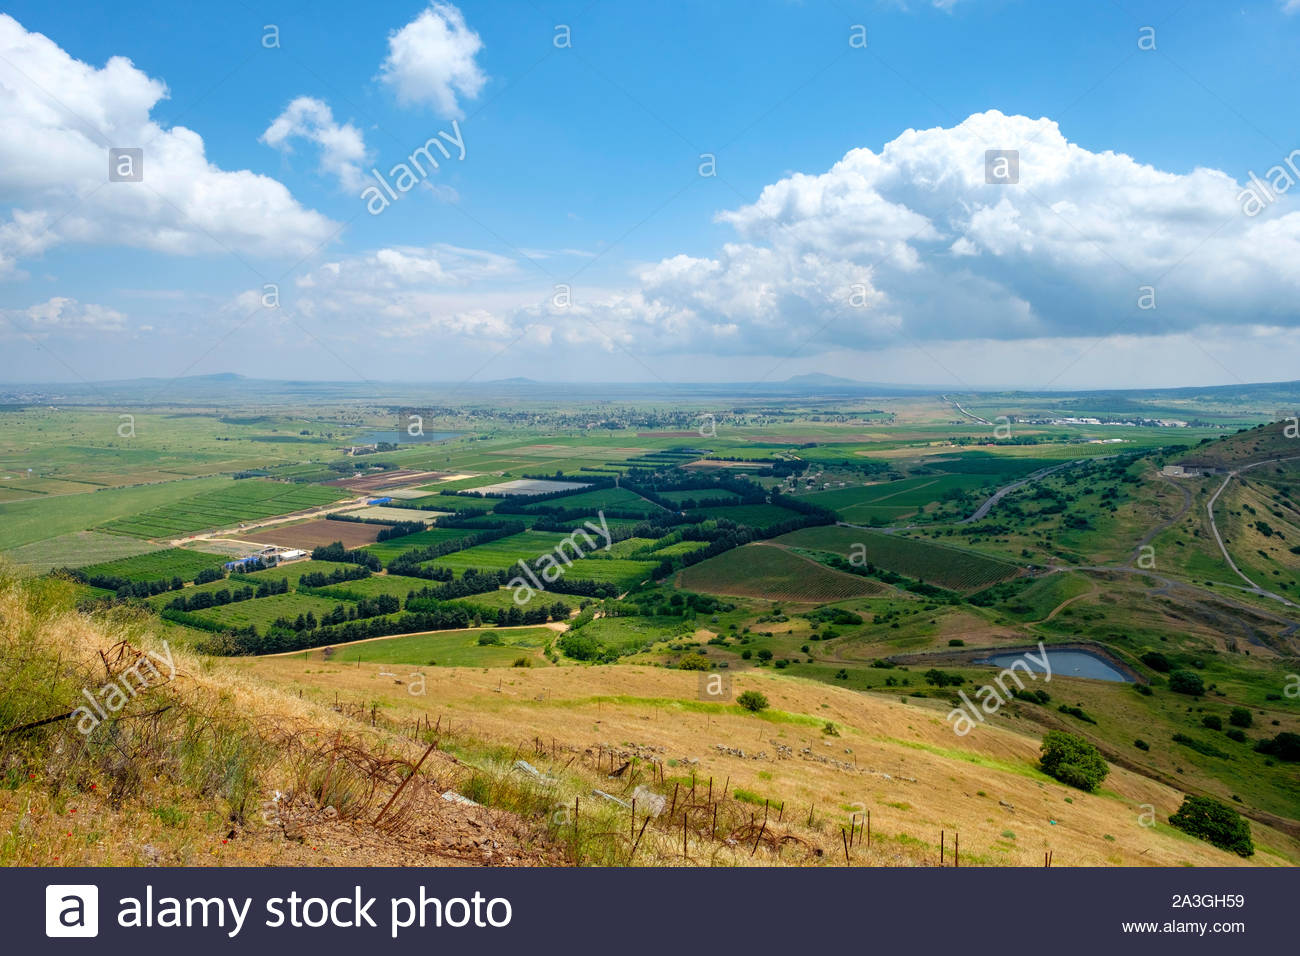 View from Mount Avital / Tall Abu an Nada, overlooking the DMZ and Syrian territory, northern Golan Heights. Stock Photo